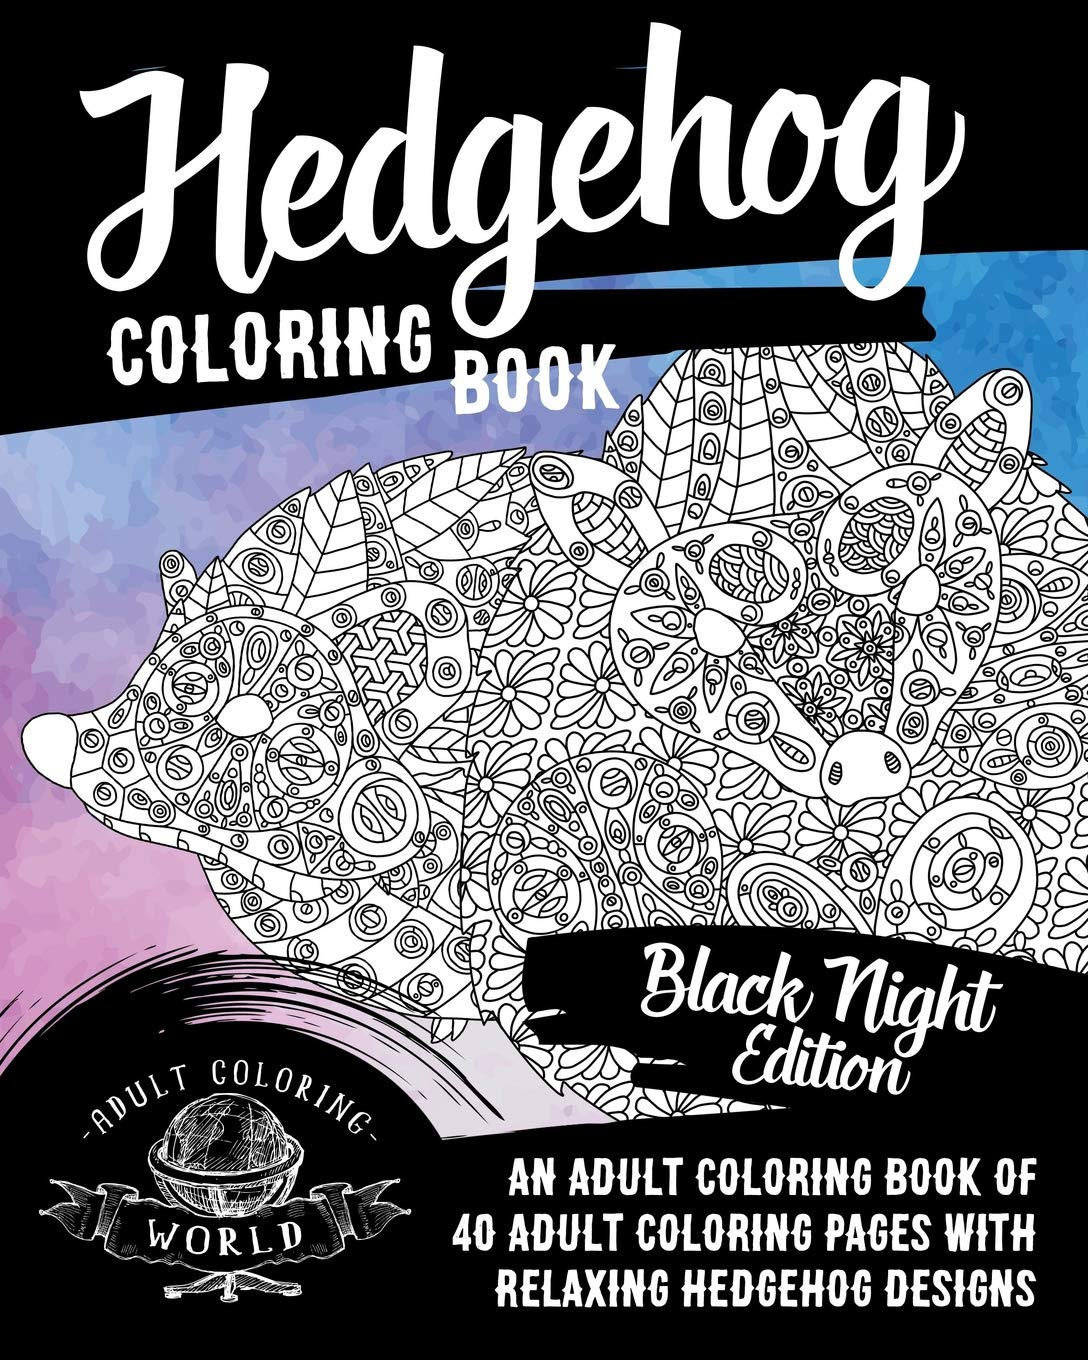 hedgehog coloring book an adult coloring book of 40 adult coloring pages with relaxing hedgehog designs pet coloring books volume 2